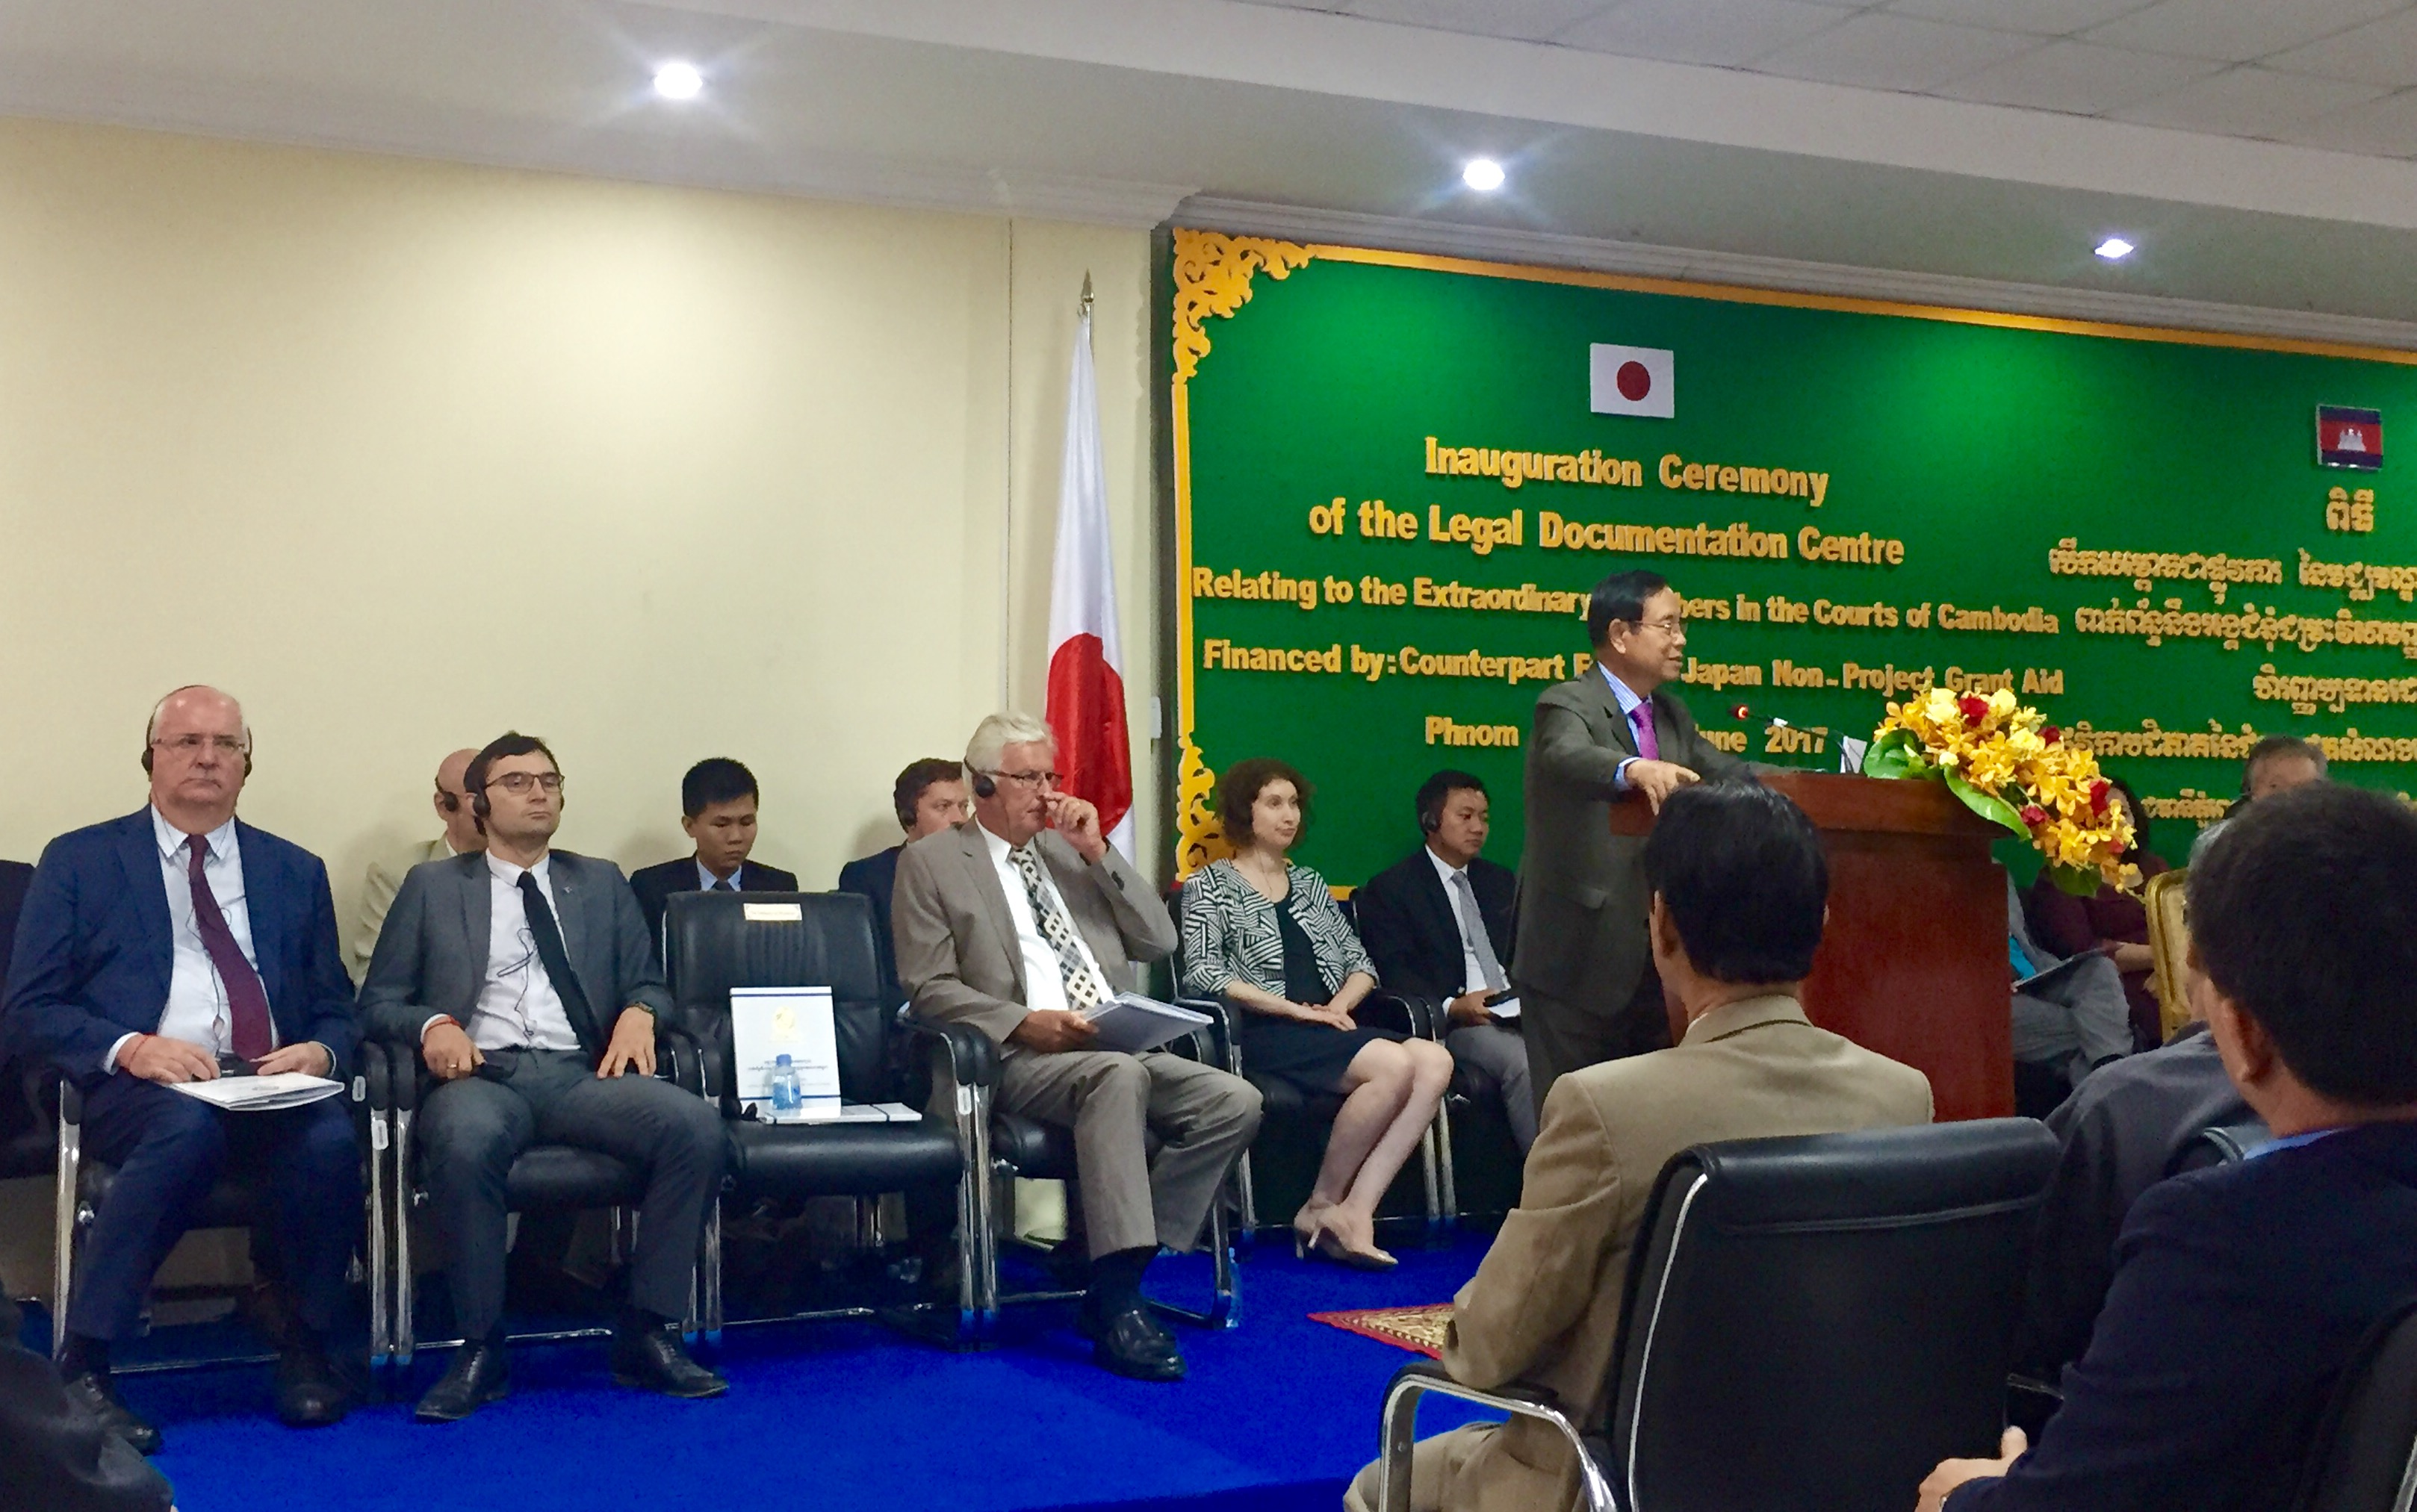 Law Students and Law Professors of Asia Euro University Attended the Inauguration Ceremony of Legal Documentation Center (LDC)